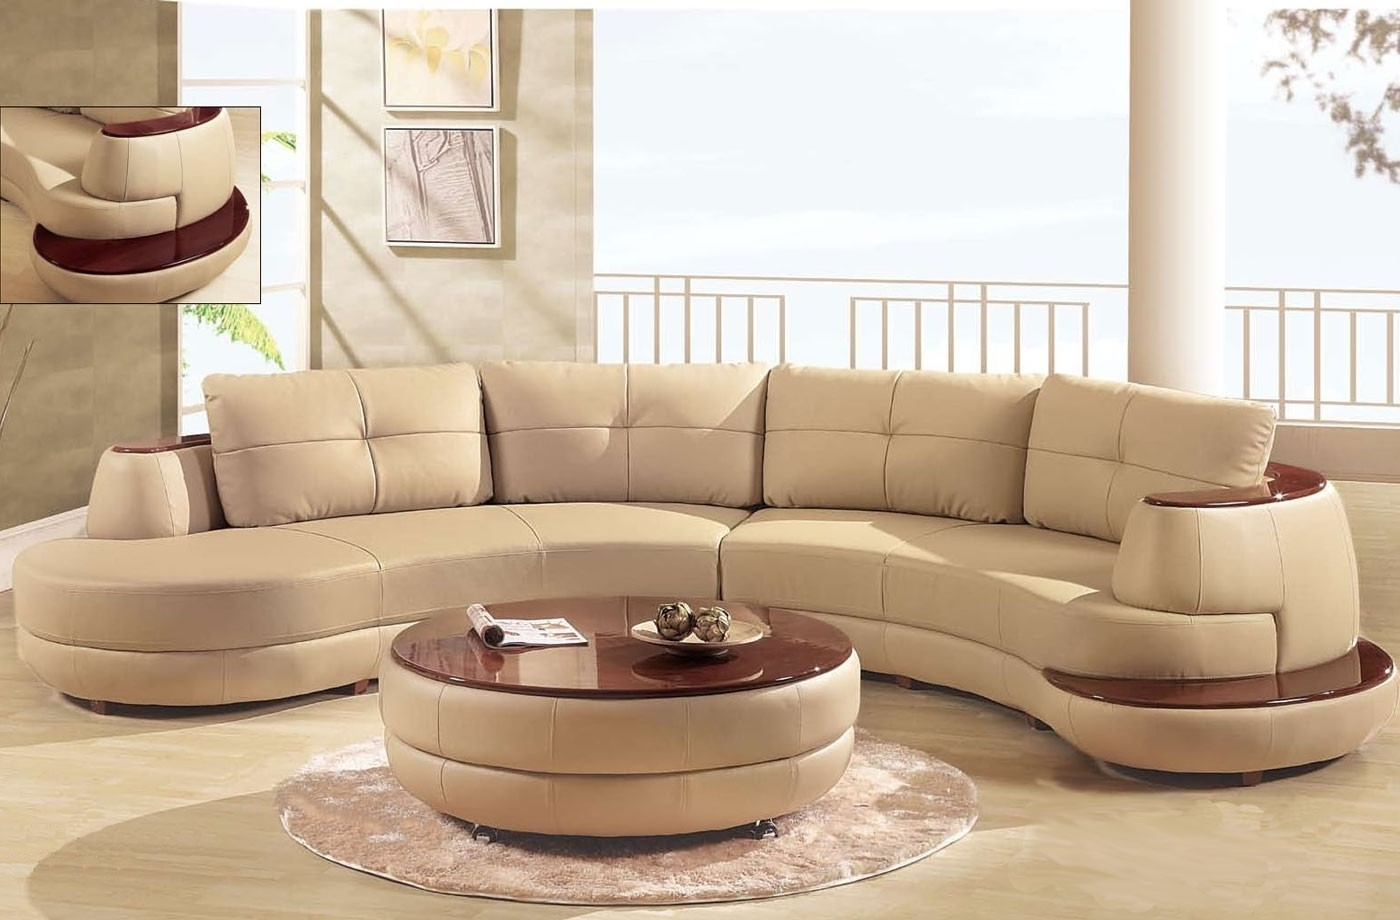 Sectional Sofas Under 200 Throughout Well Known Cheap Sofas Under 200 – Mforum (View 15 of 20)